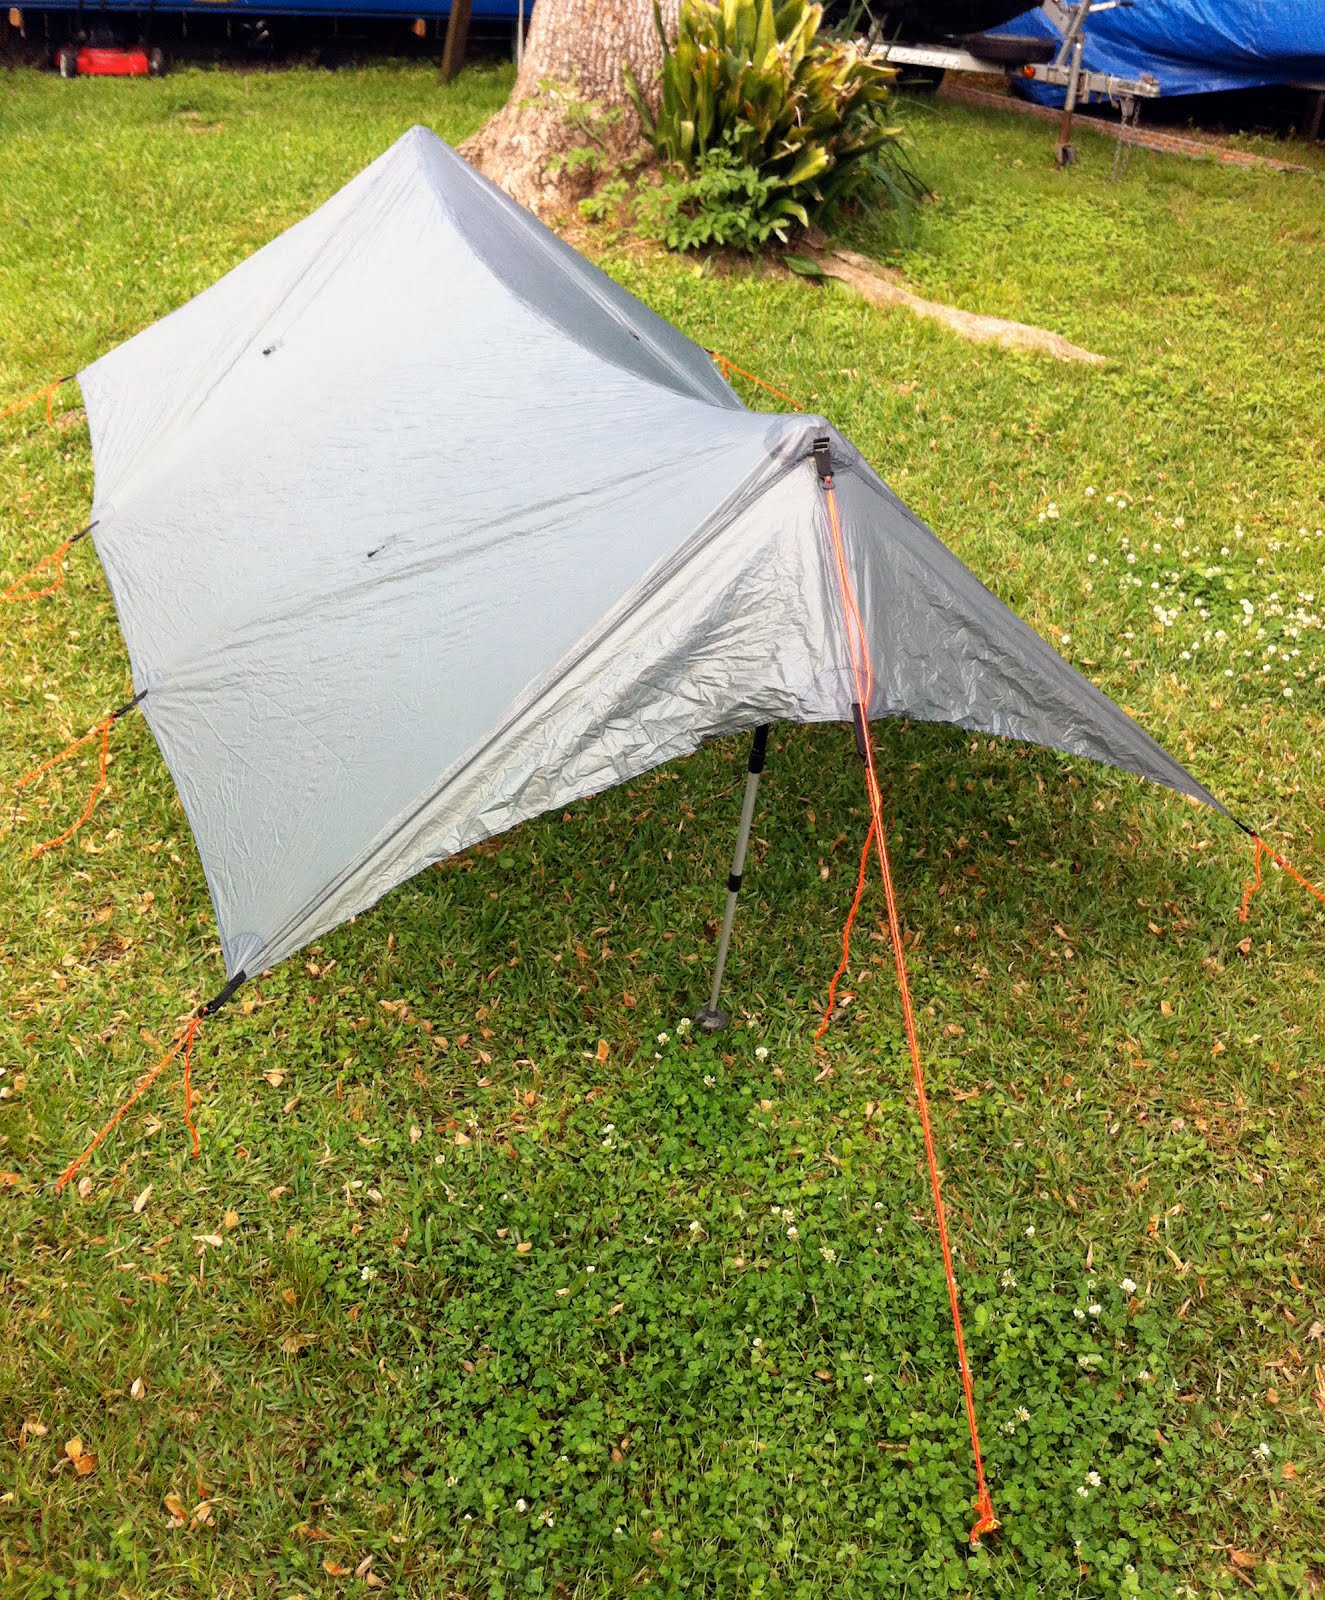 It worked great in good weather. Excellent ventilation lightweight and versatile in how you could set it up. In bad weather after I switched the trekking ... & El Camino Blues...: AT Gear Reviews: Tents u0026 Shelters